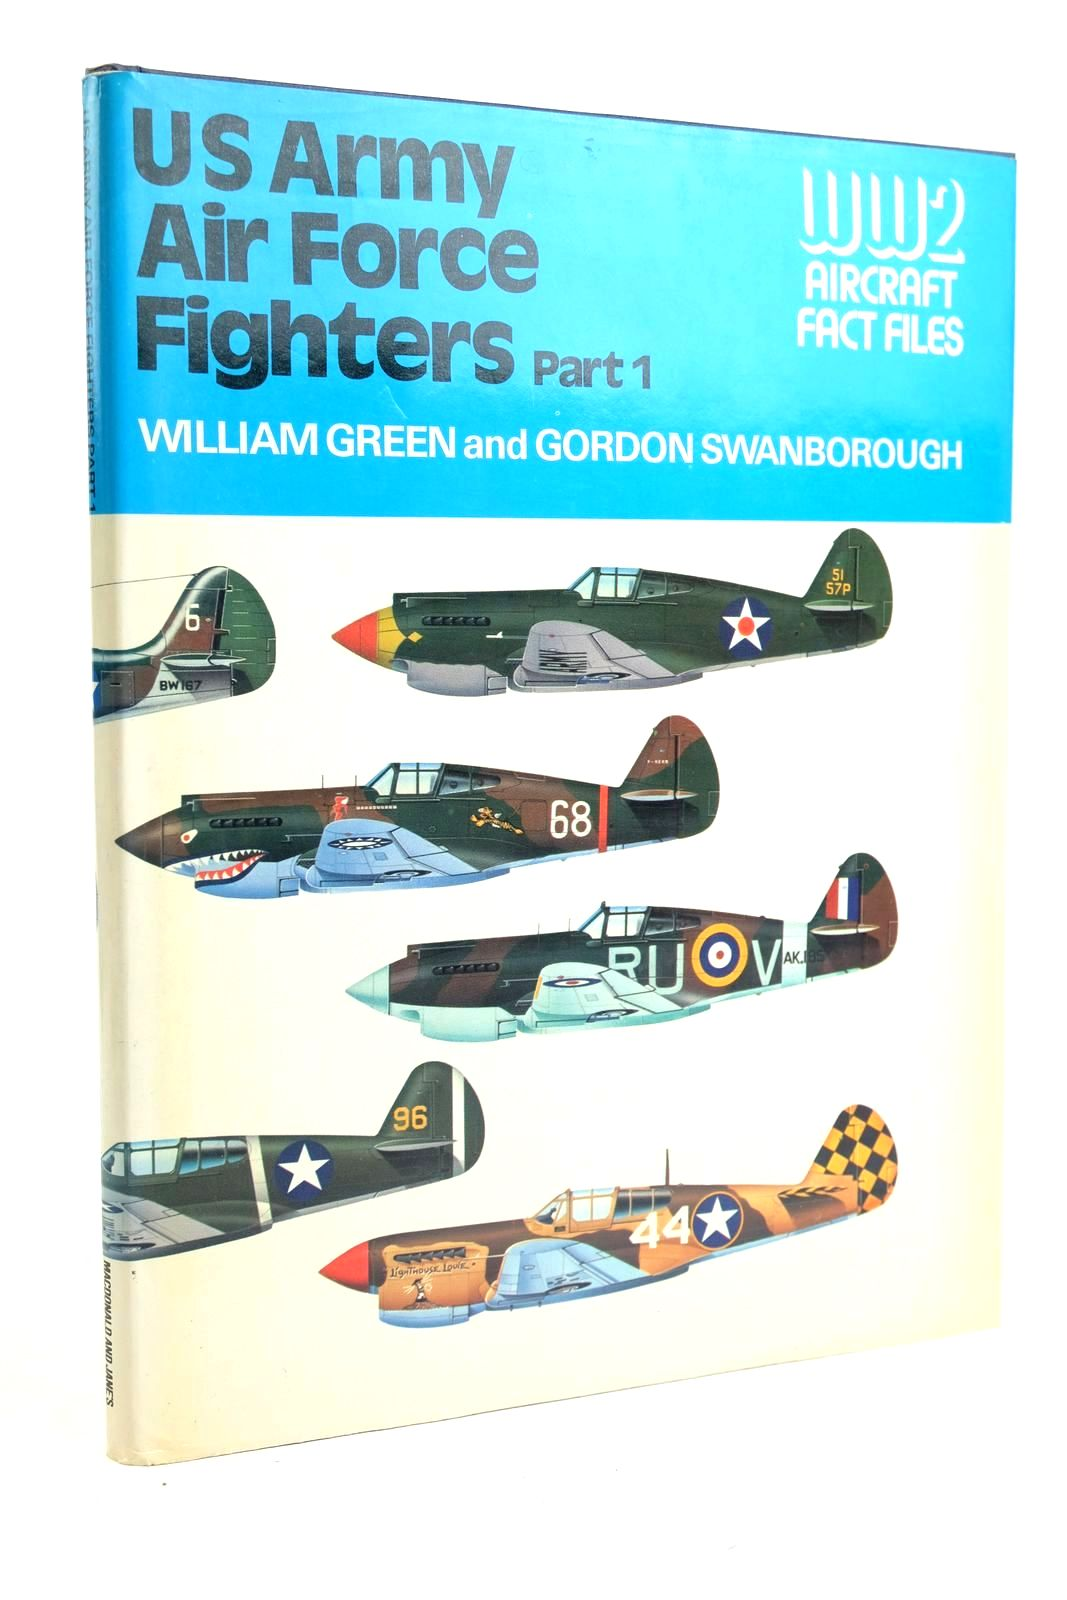 Photo of US ARMY AIR FORCE FIGHTERS PART 1 written by Green, William Swanborough, Gordon published by Macdonald and Jane's (STOCK CODE: 1320152)  for sale by Stella & Rose's Books